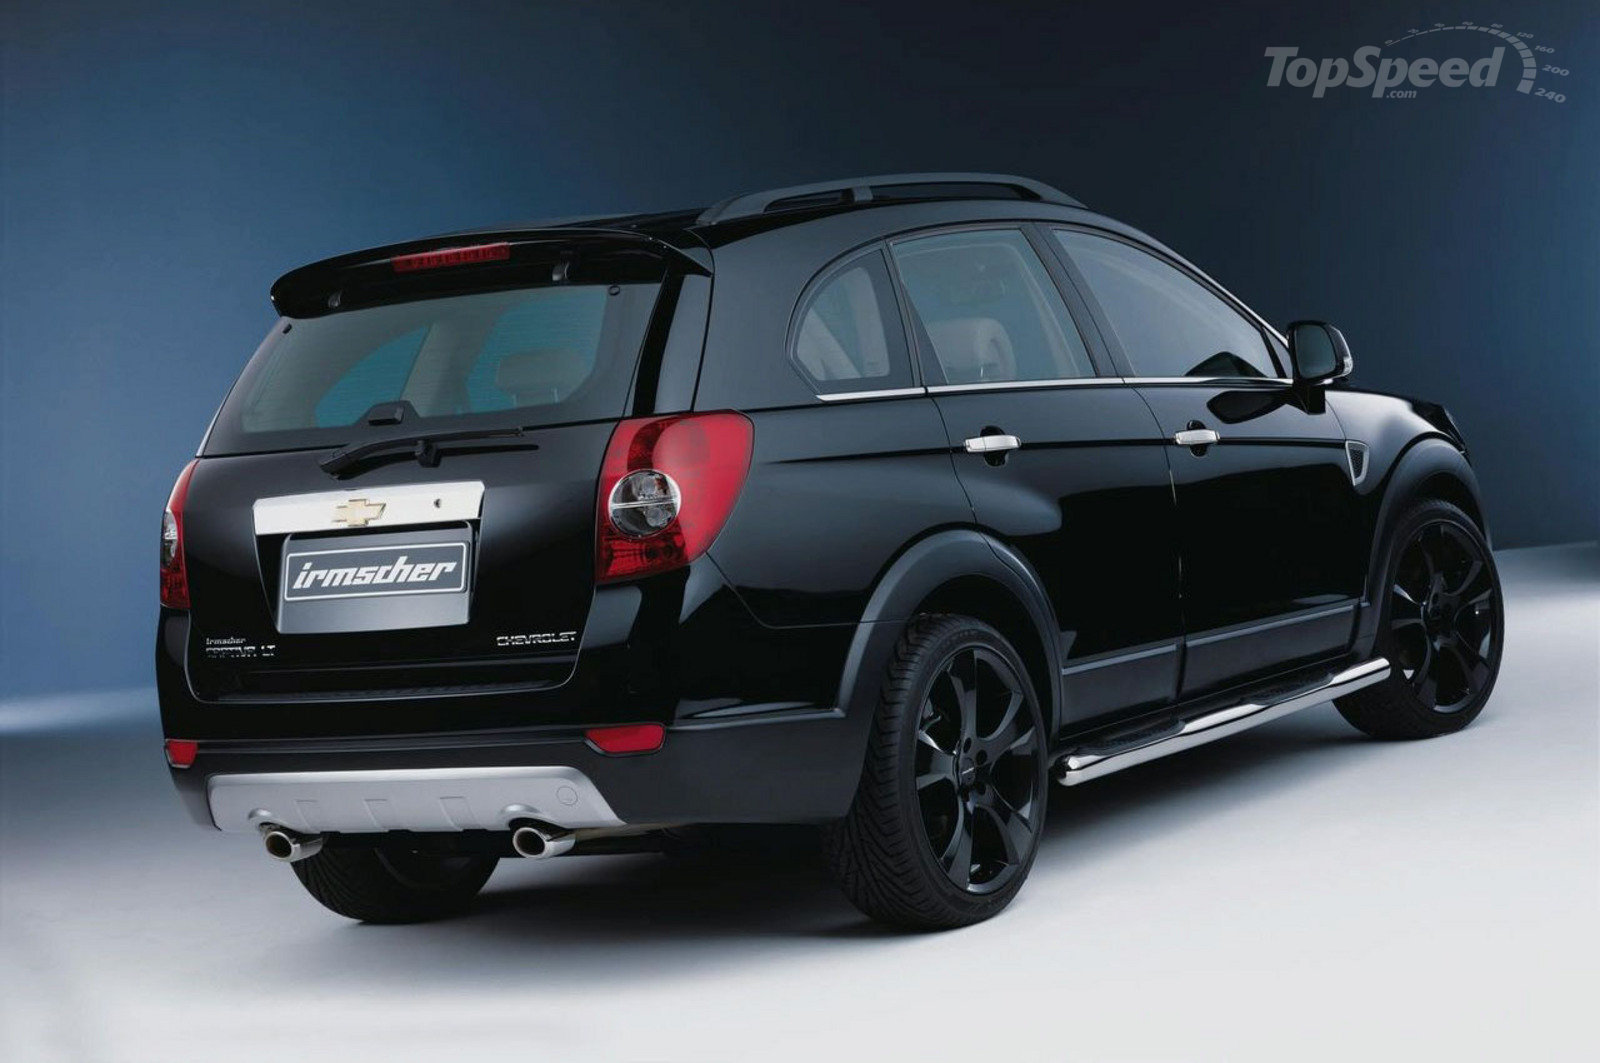 hight resolution of chevrolet captiva by irmscher